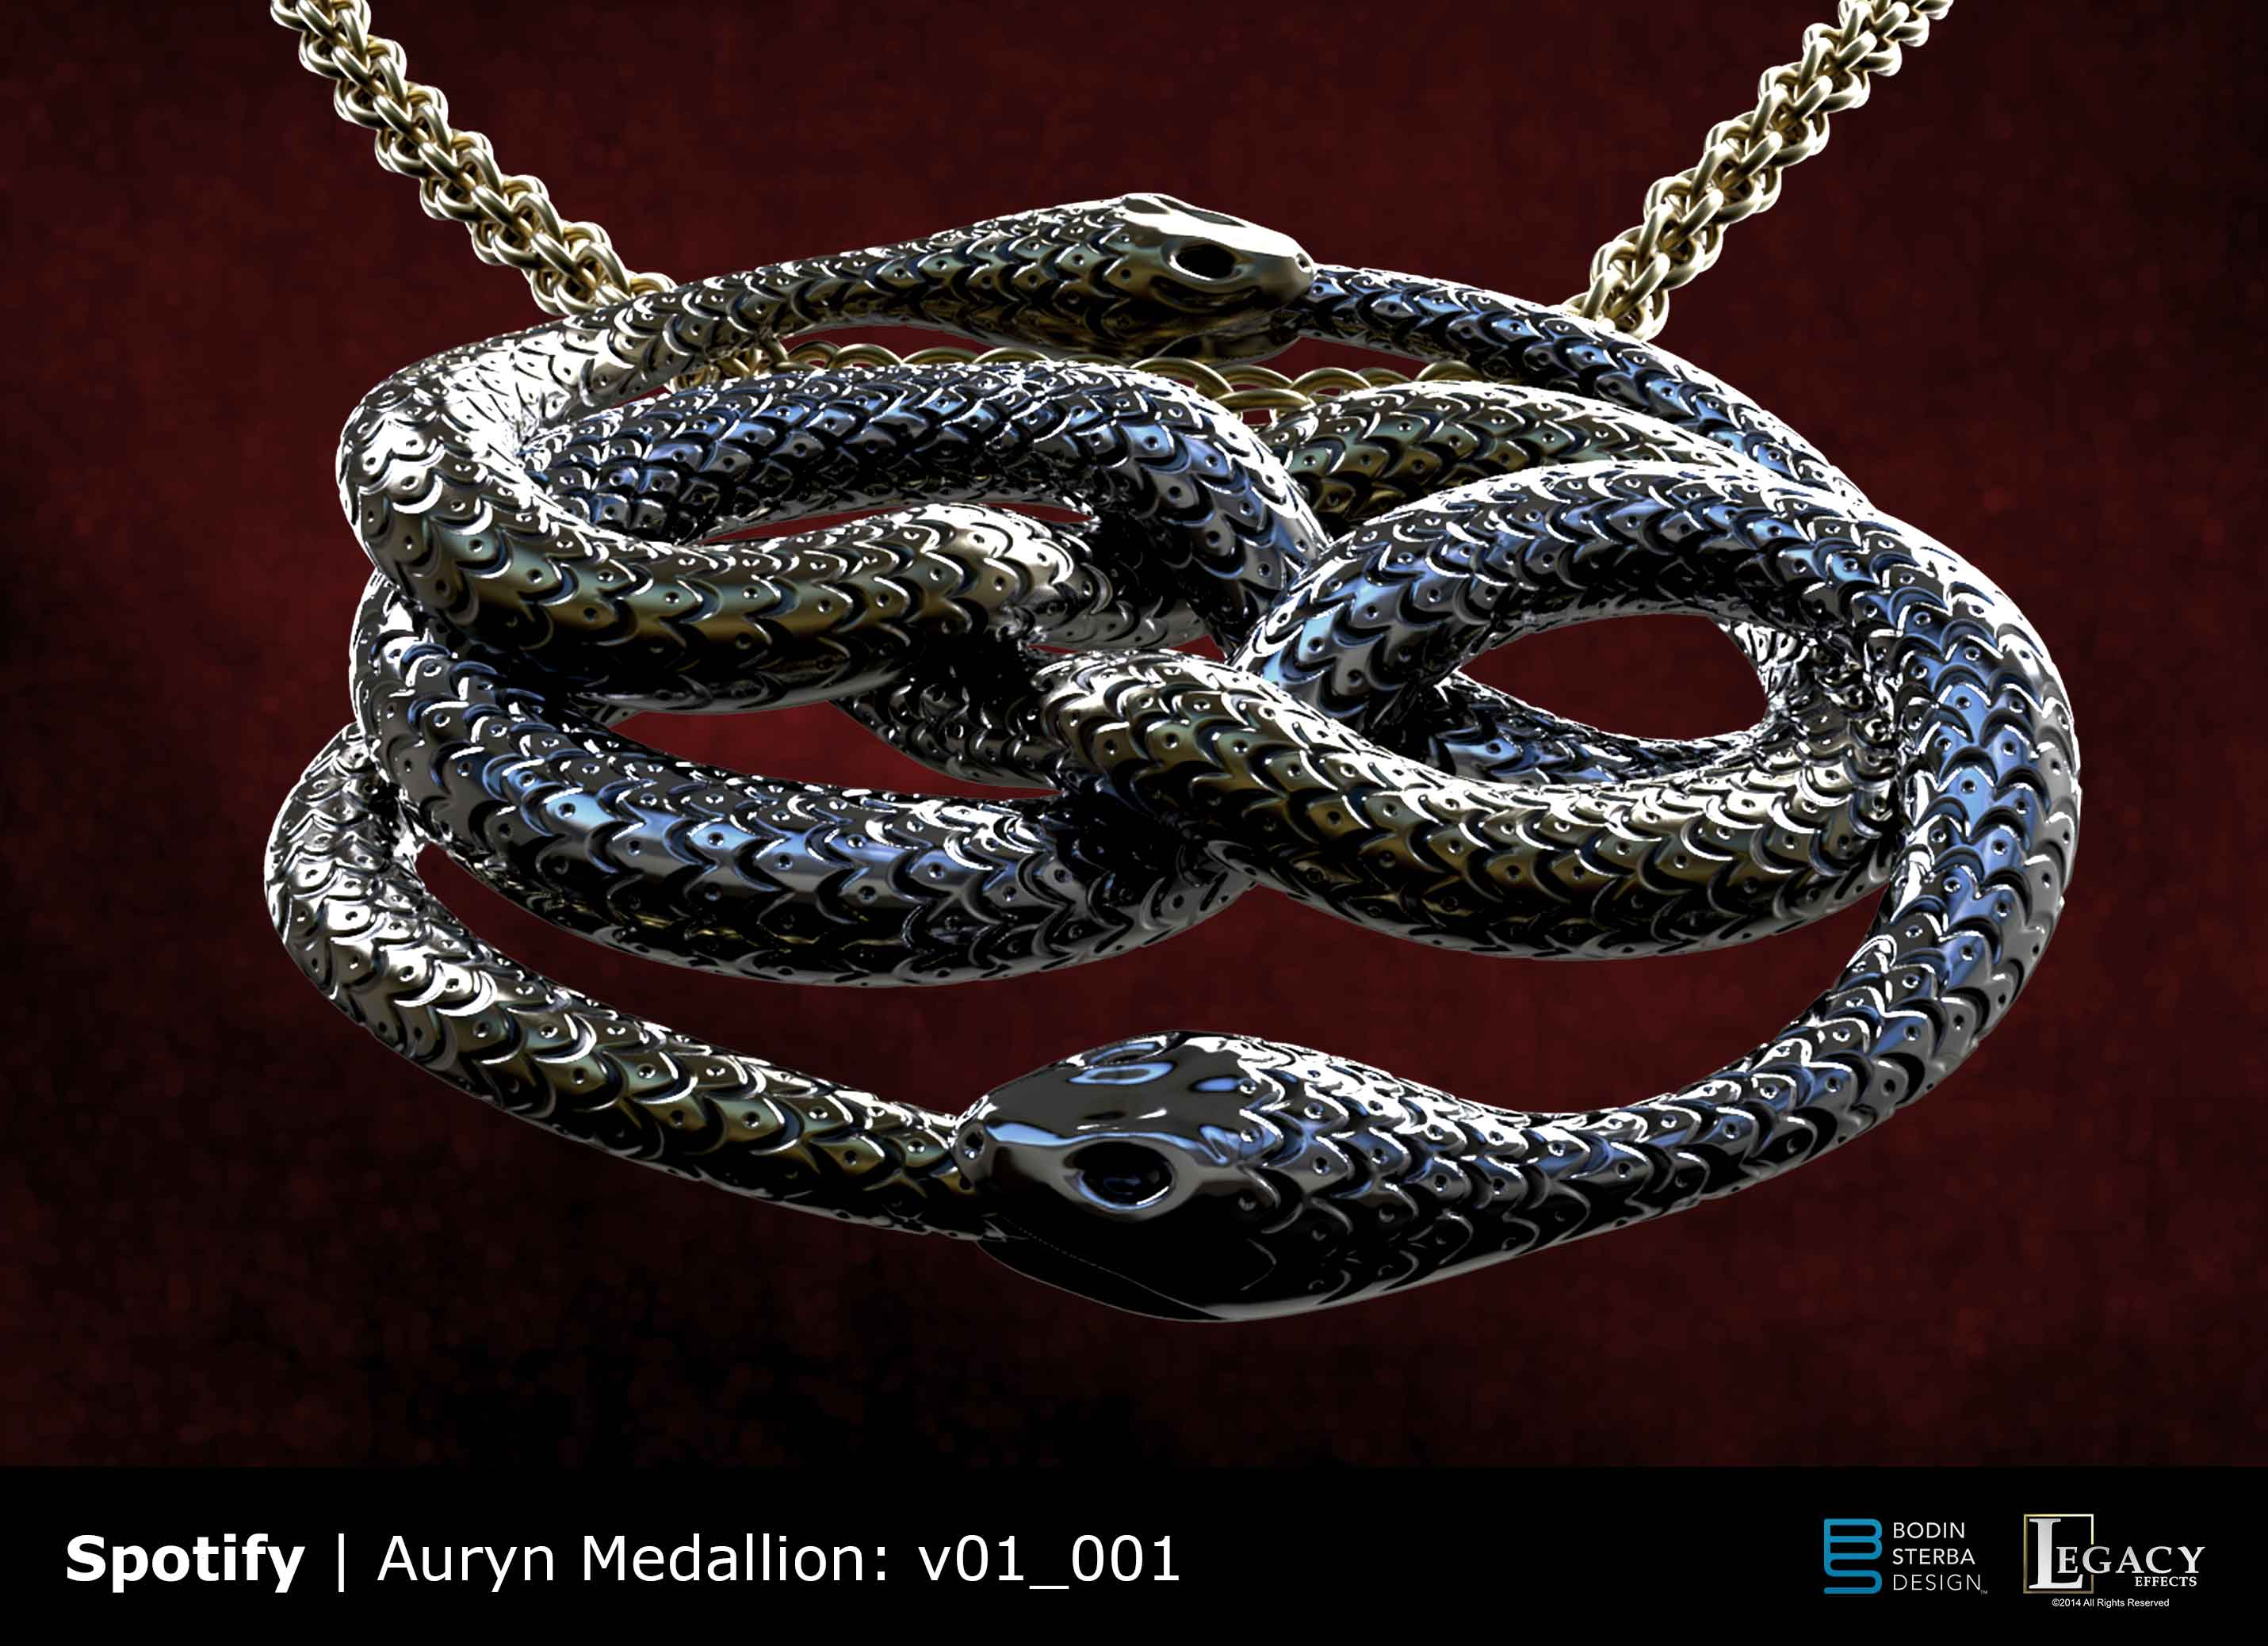 Spotify the never ending story ad bodin sterba design spotify the never ending story auryn medallion mozeypictures Choice Image